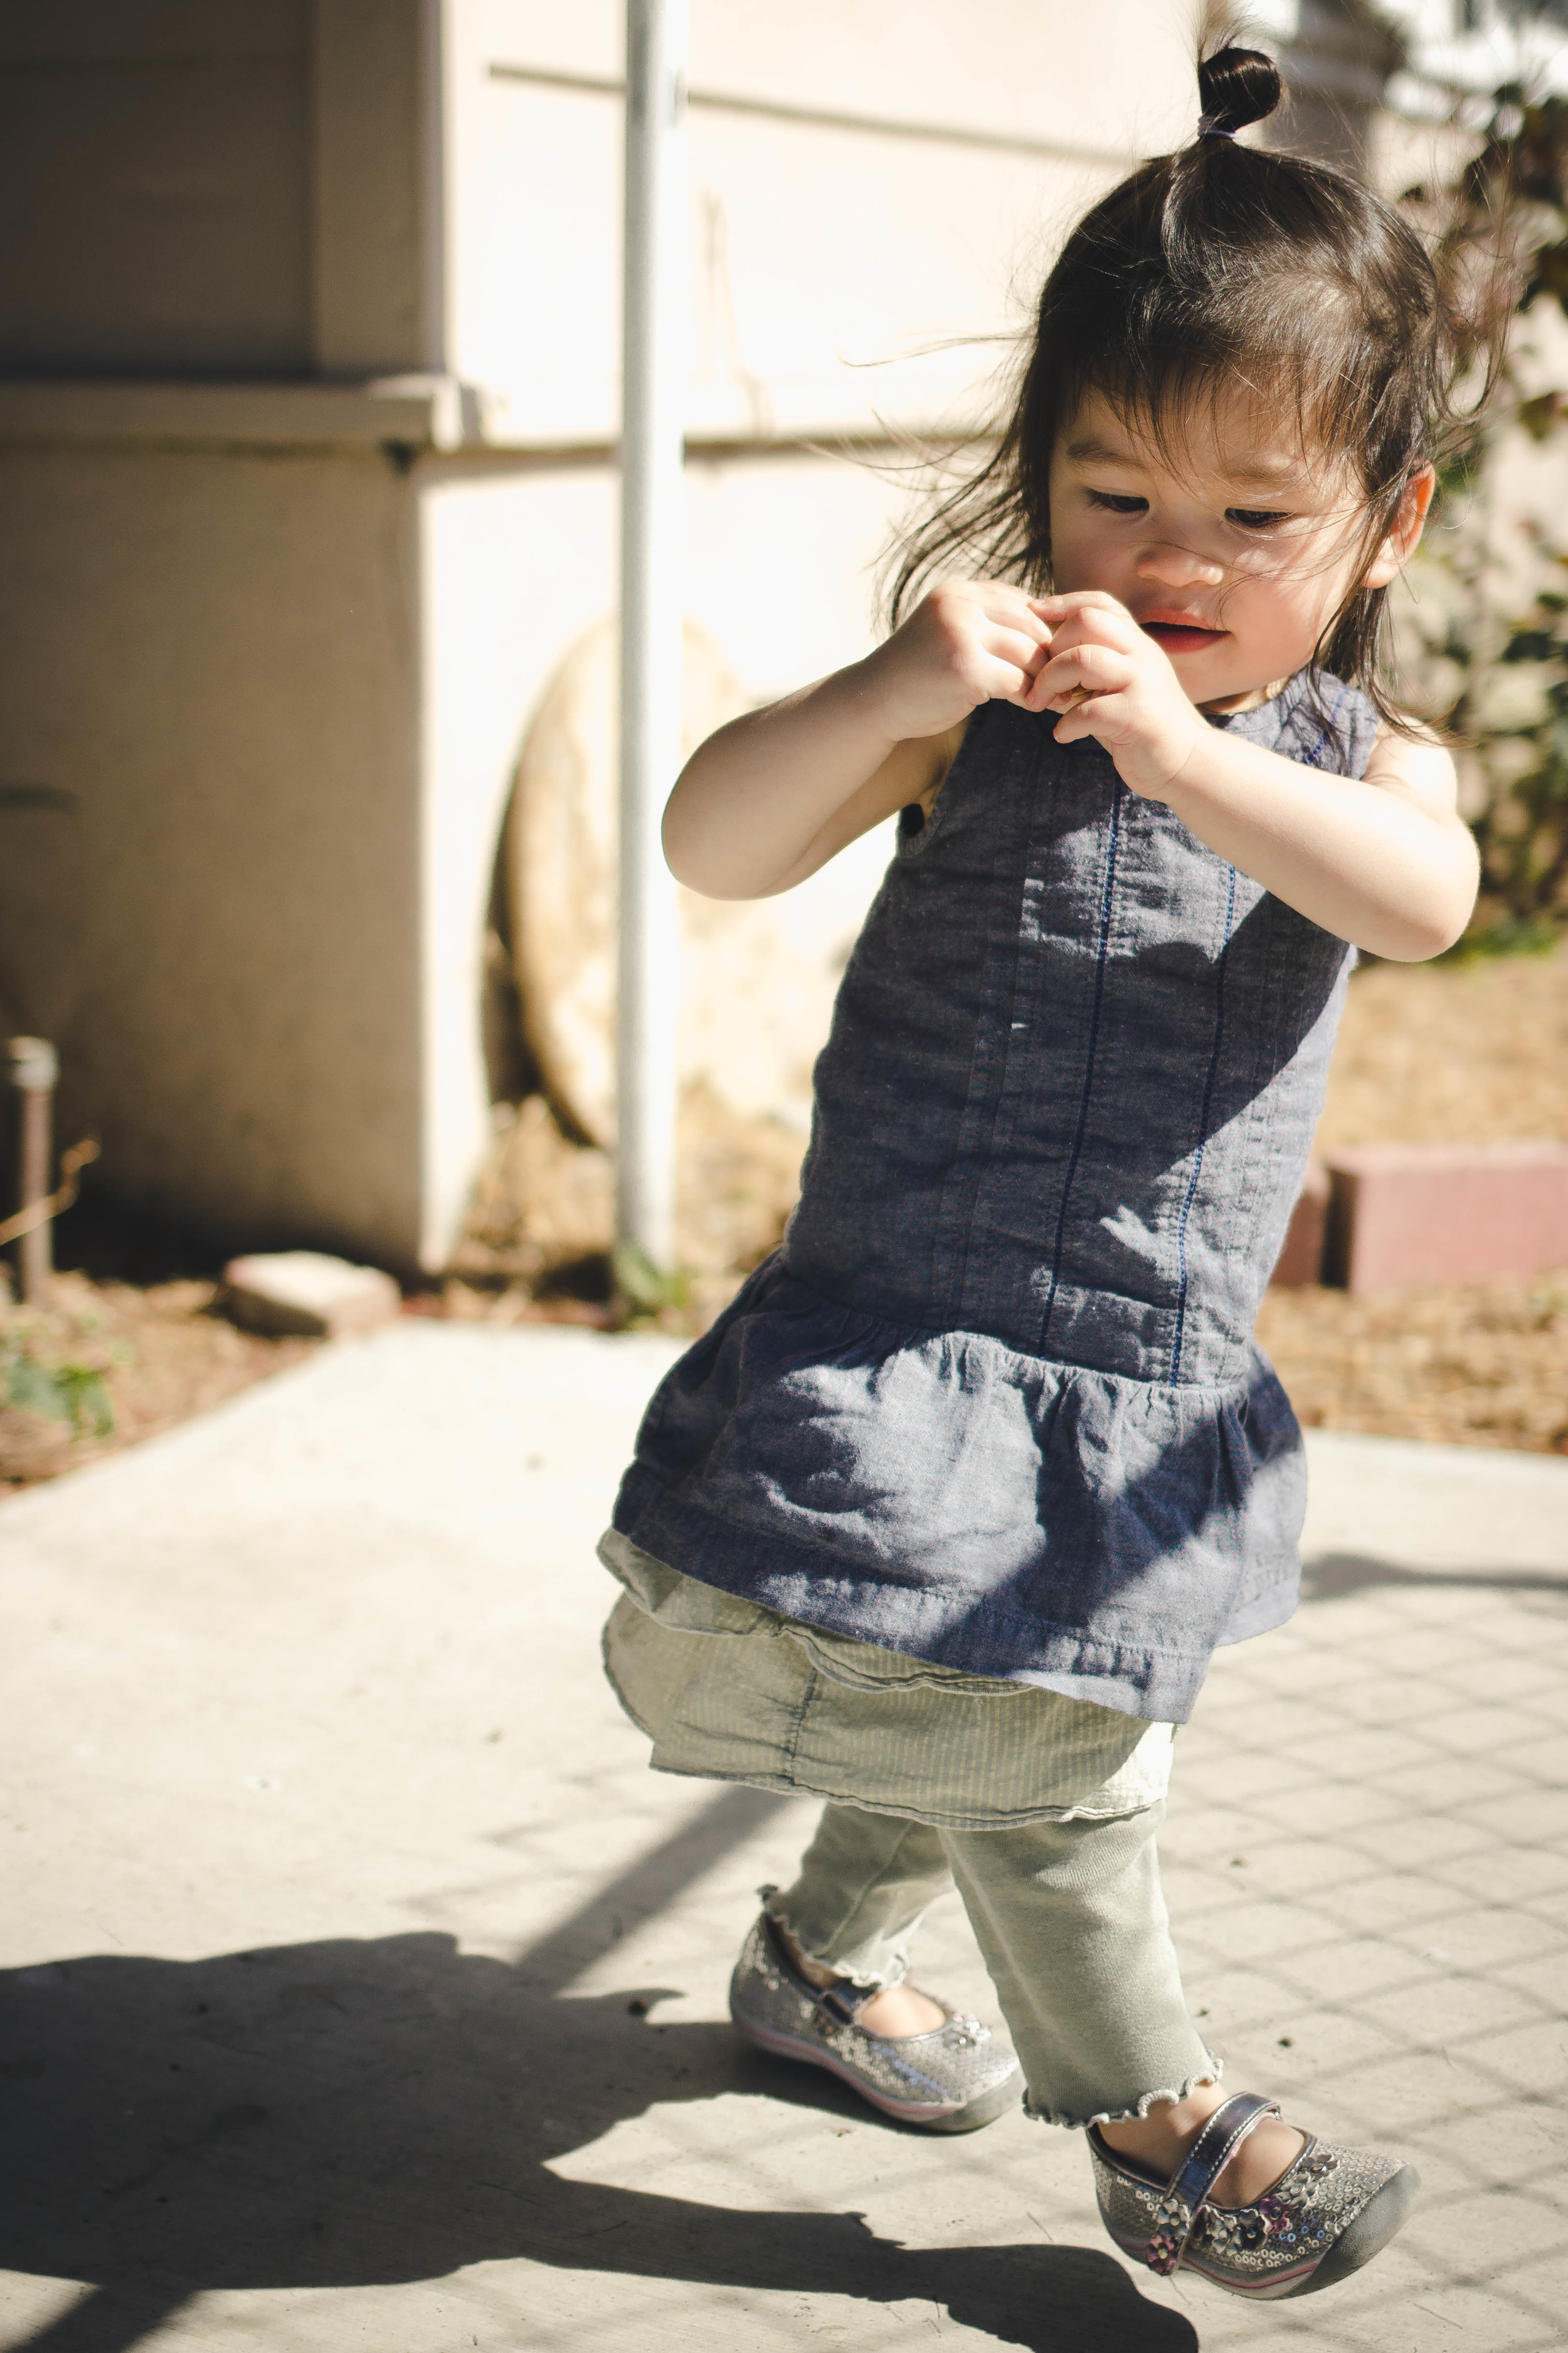 Selah playing in the yard at almost 2 years old | by fit for the soul